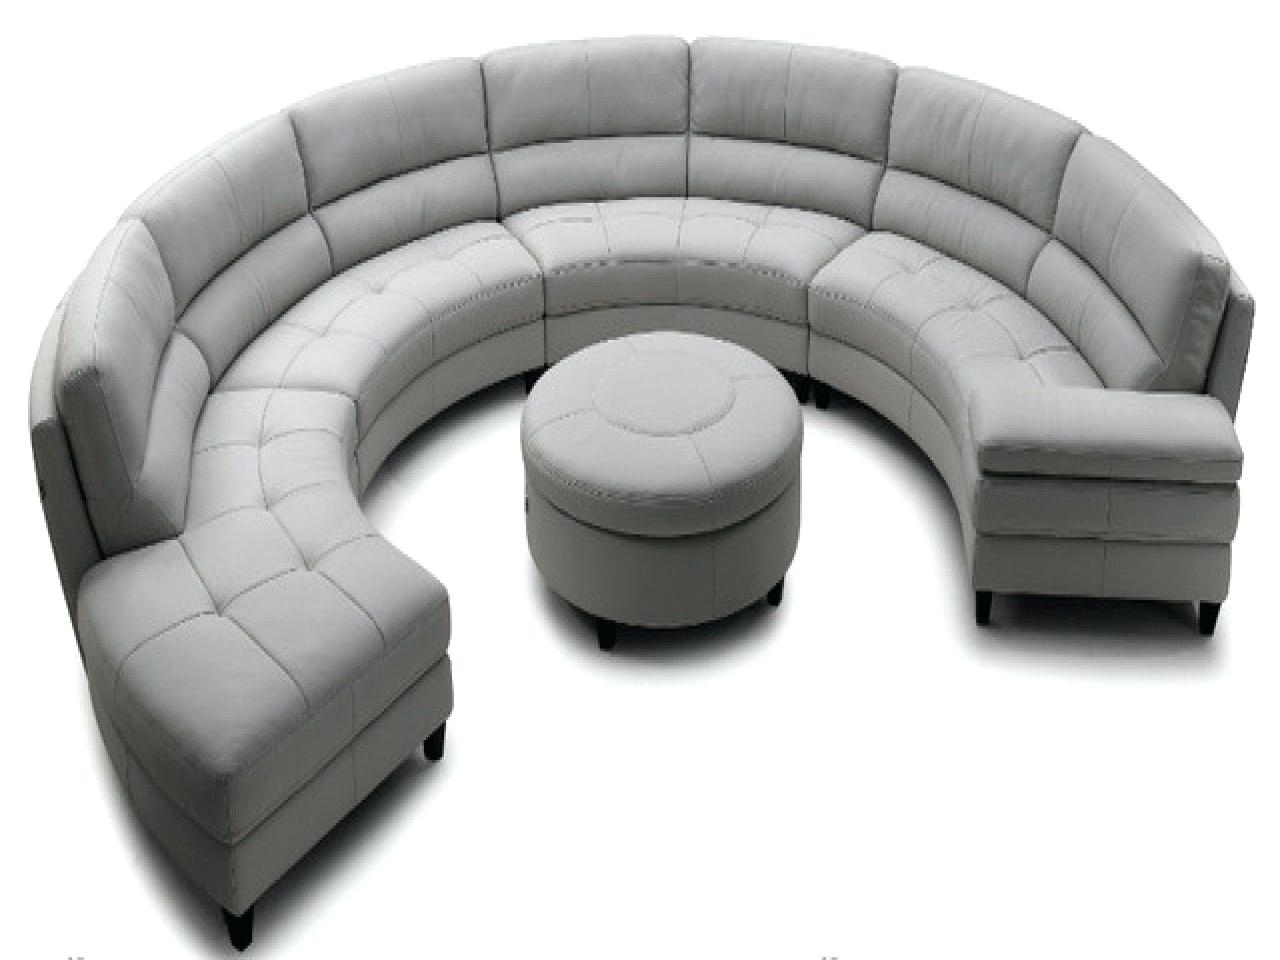 Fashionable Round Sofas With Regard To Circular Sectional Sofa Sa Sas Bed Semi Circle Couches Modern (View 11 of 15)